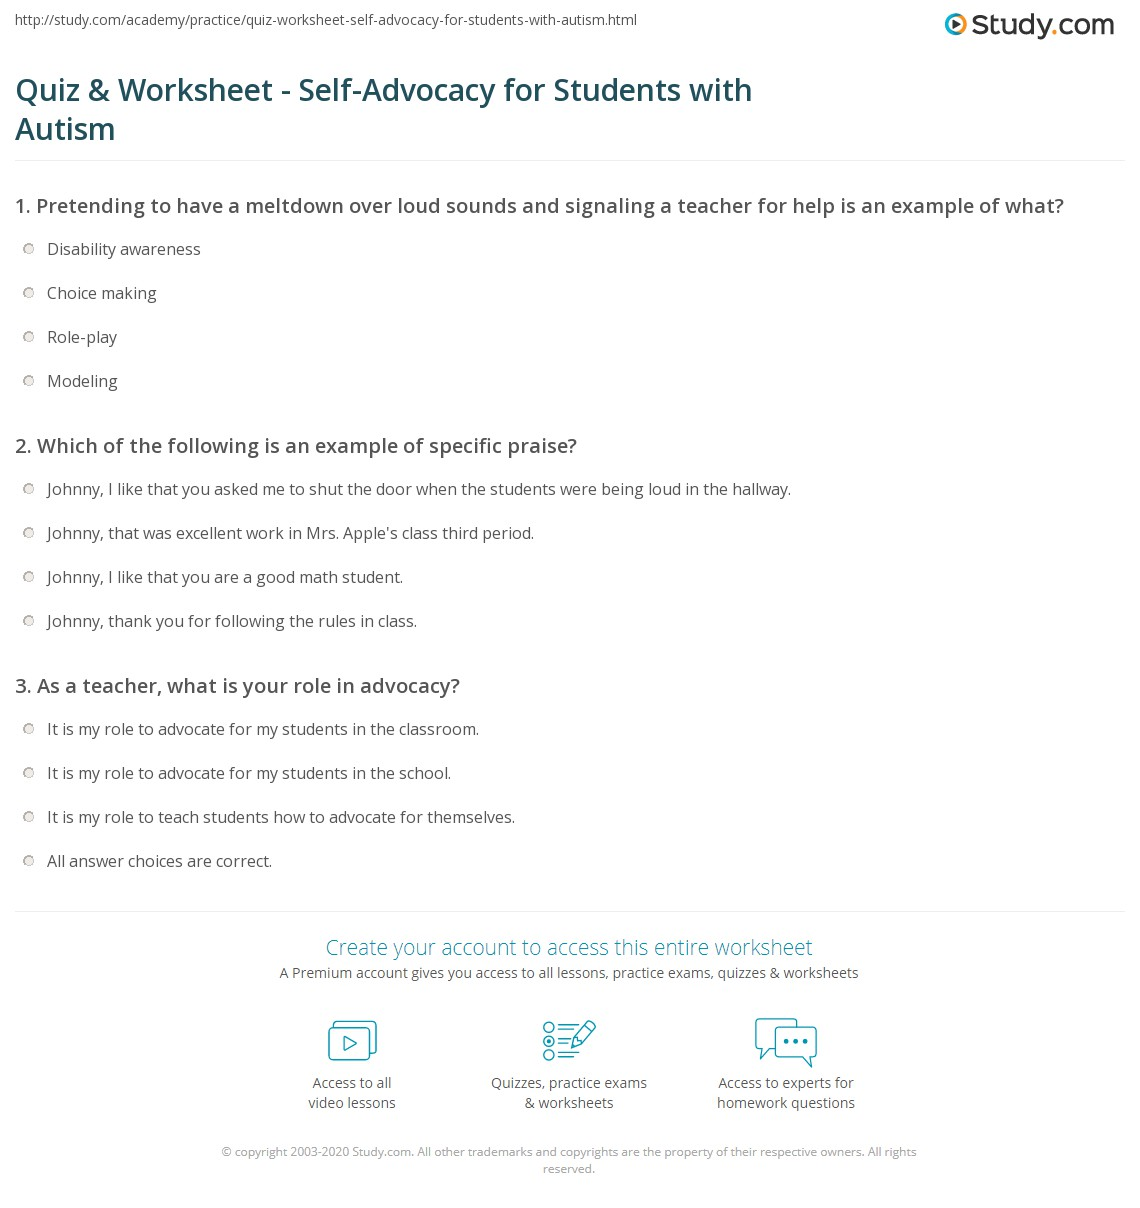 Worksheet Self Advocacy   Worksheets   Elementary Students quiz worksheet self advocacy for students with autism study com print teaching to worksheet